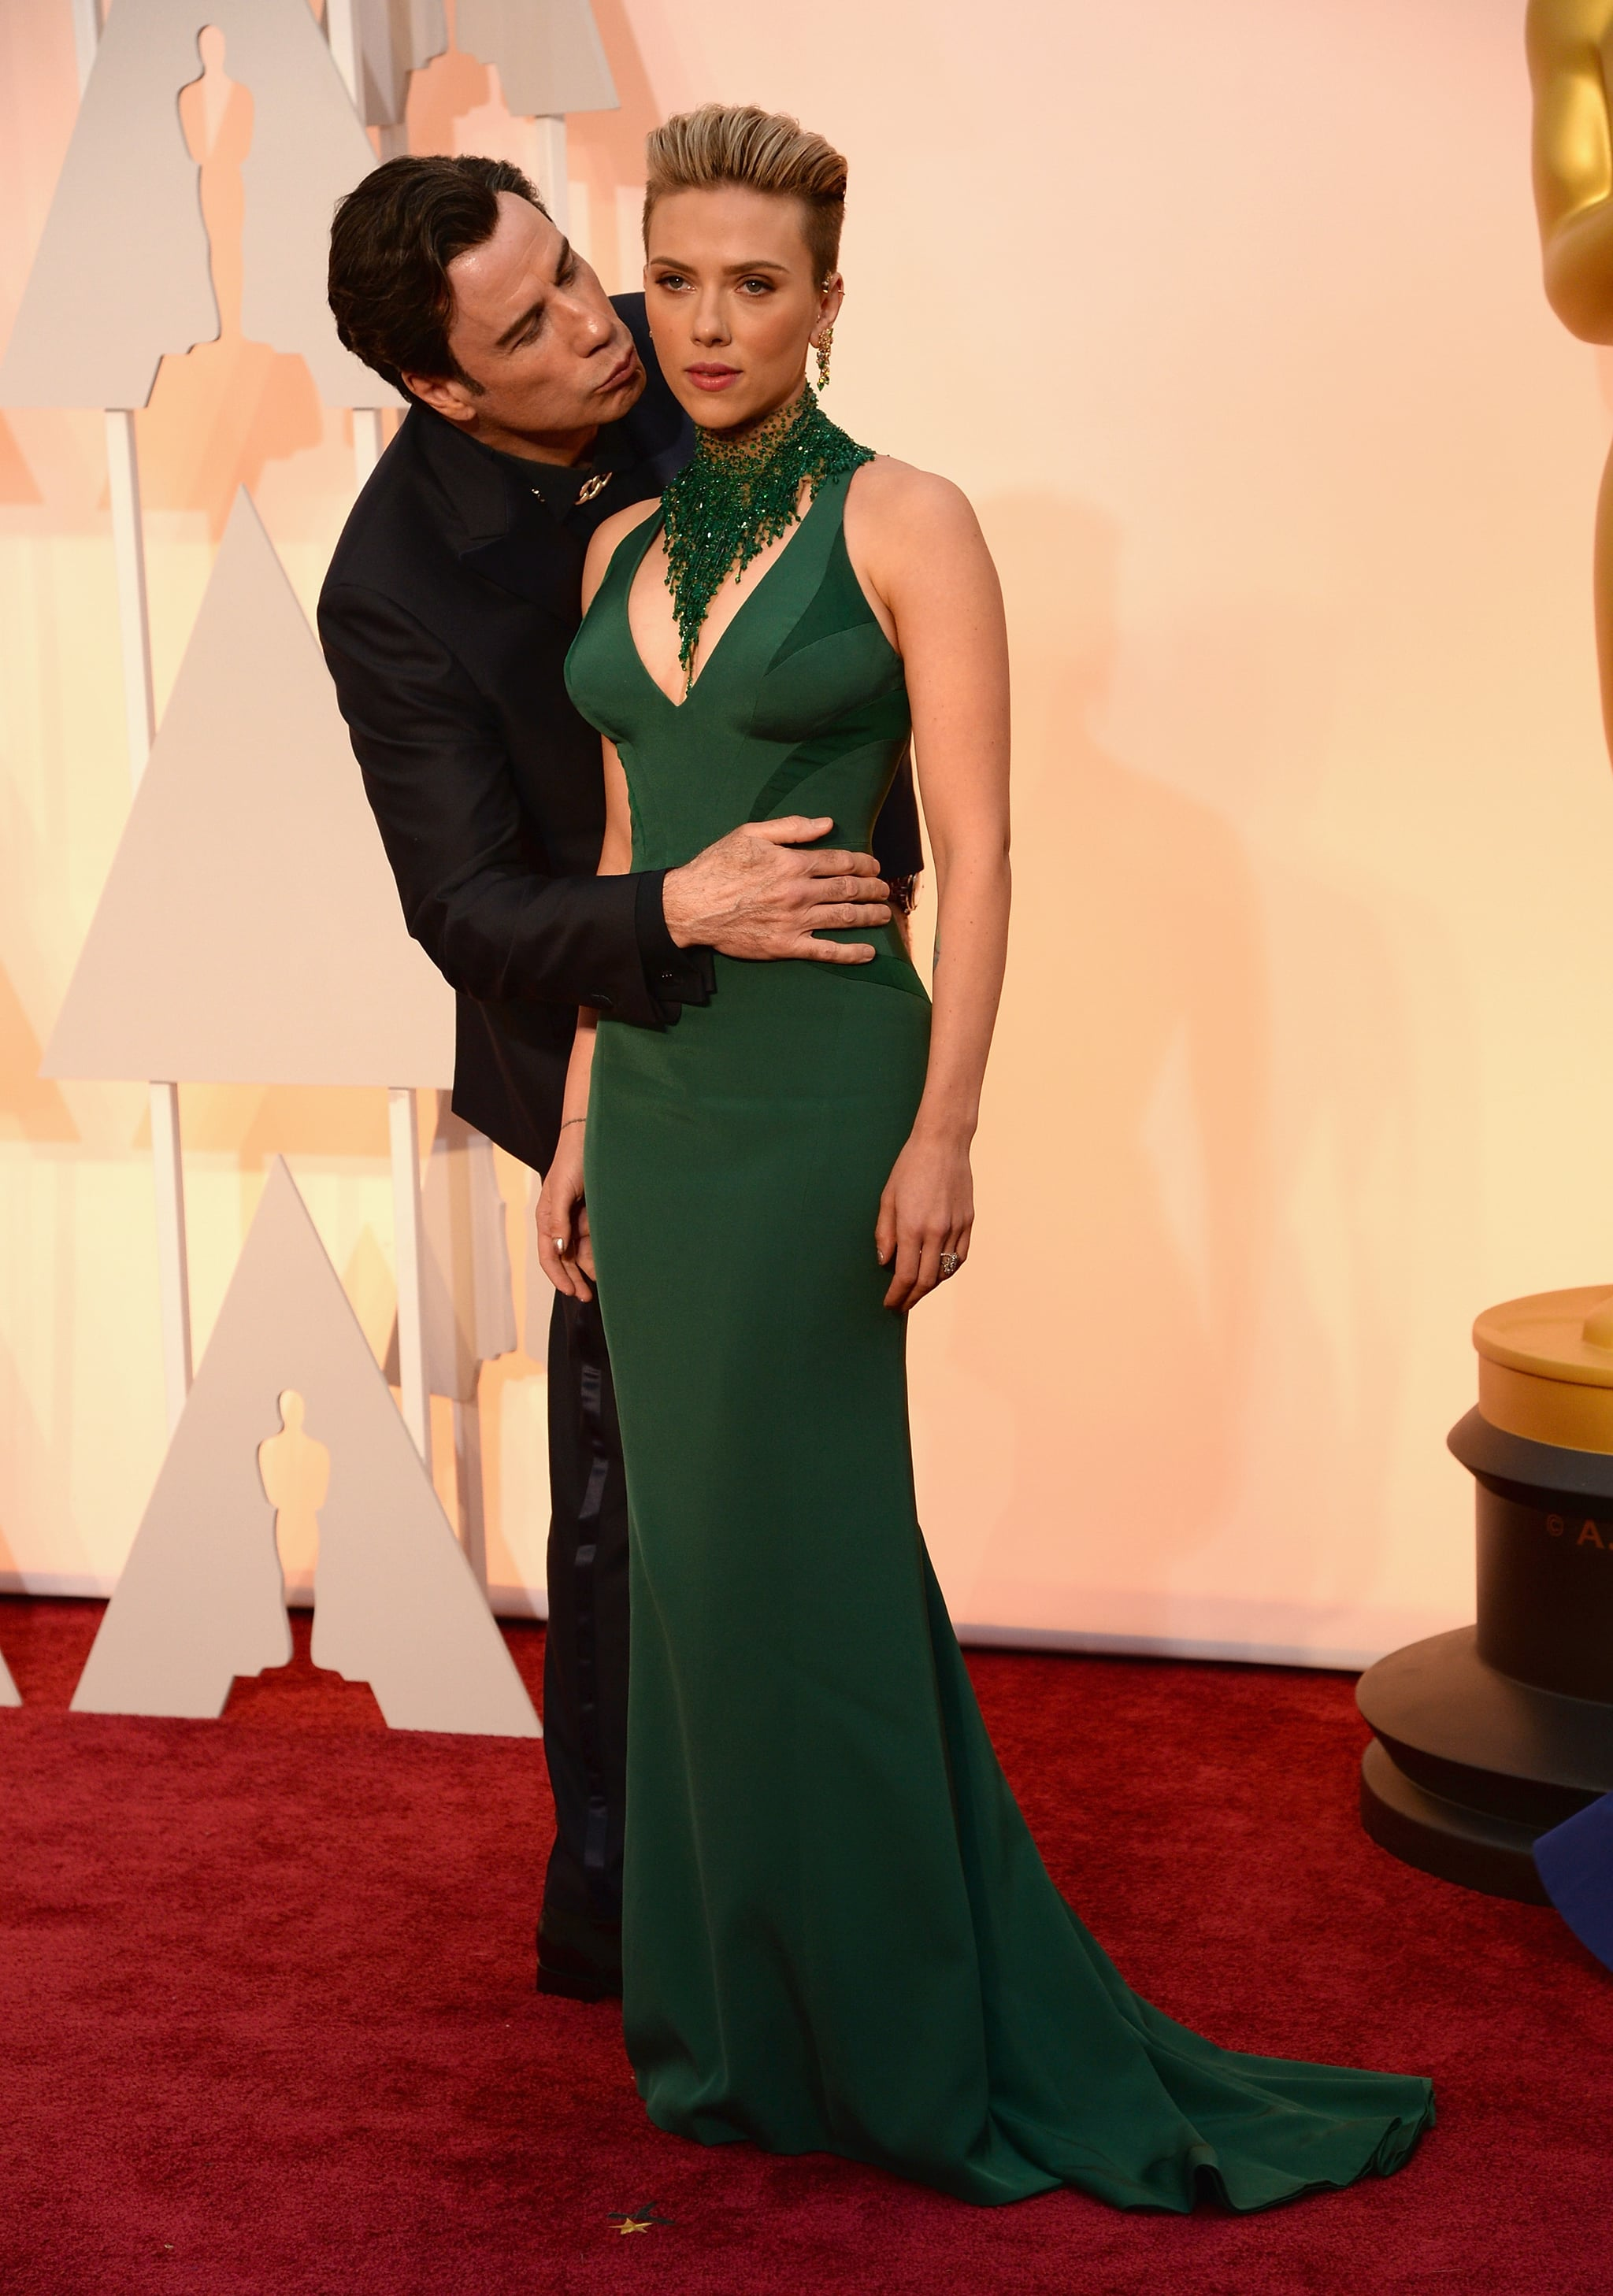 When John Travolta Got Creepy With Scarlett Johansson On The Red Carpet 18 Times You Felt Embarrassed For Stars At The Oscars Popsugar Middle East Celebrity And Entertainment Photo 2